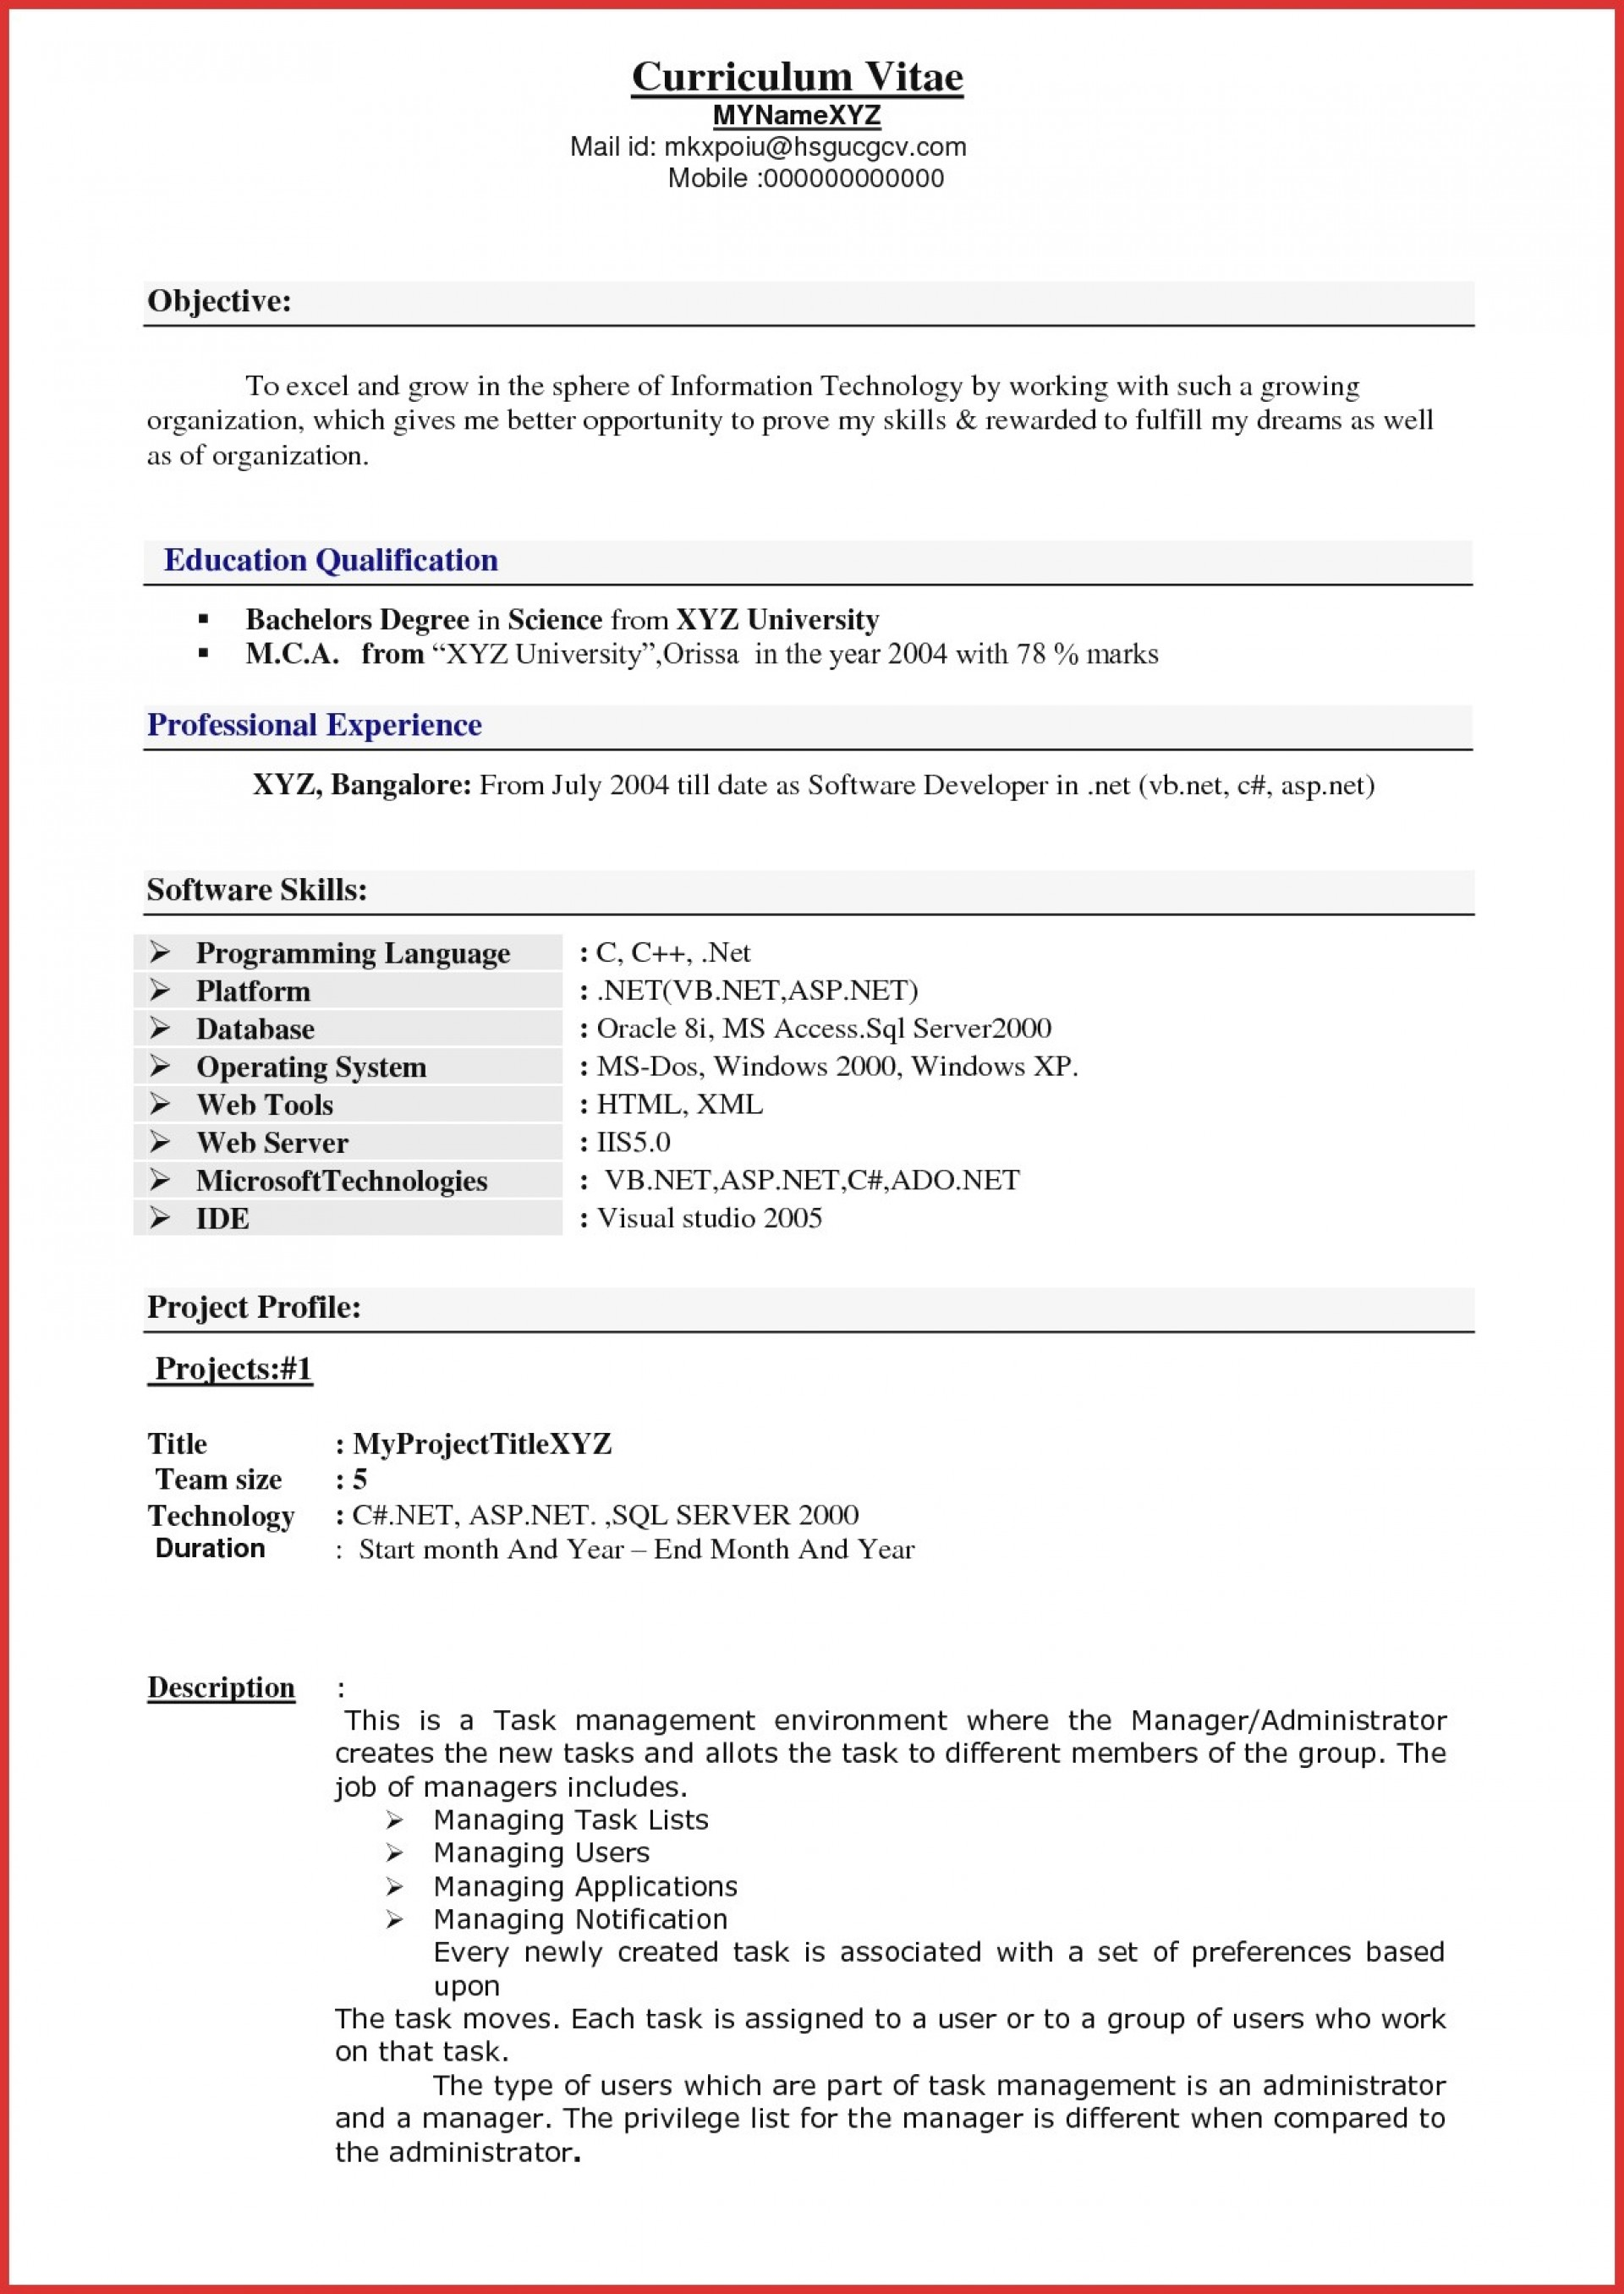 007 Research Paper Free On Poverty In America Well Written Resume Lovely Writing Software Example And Formidable 1920